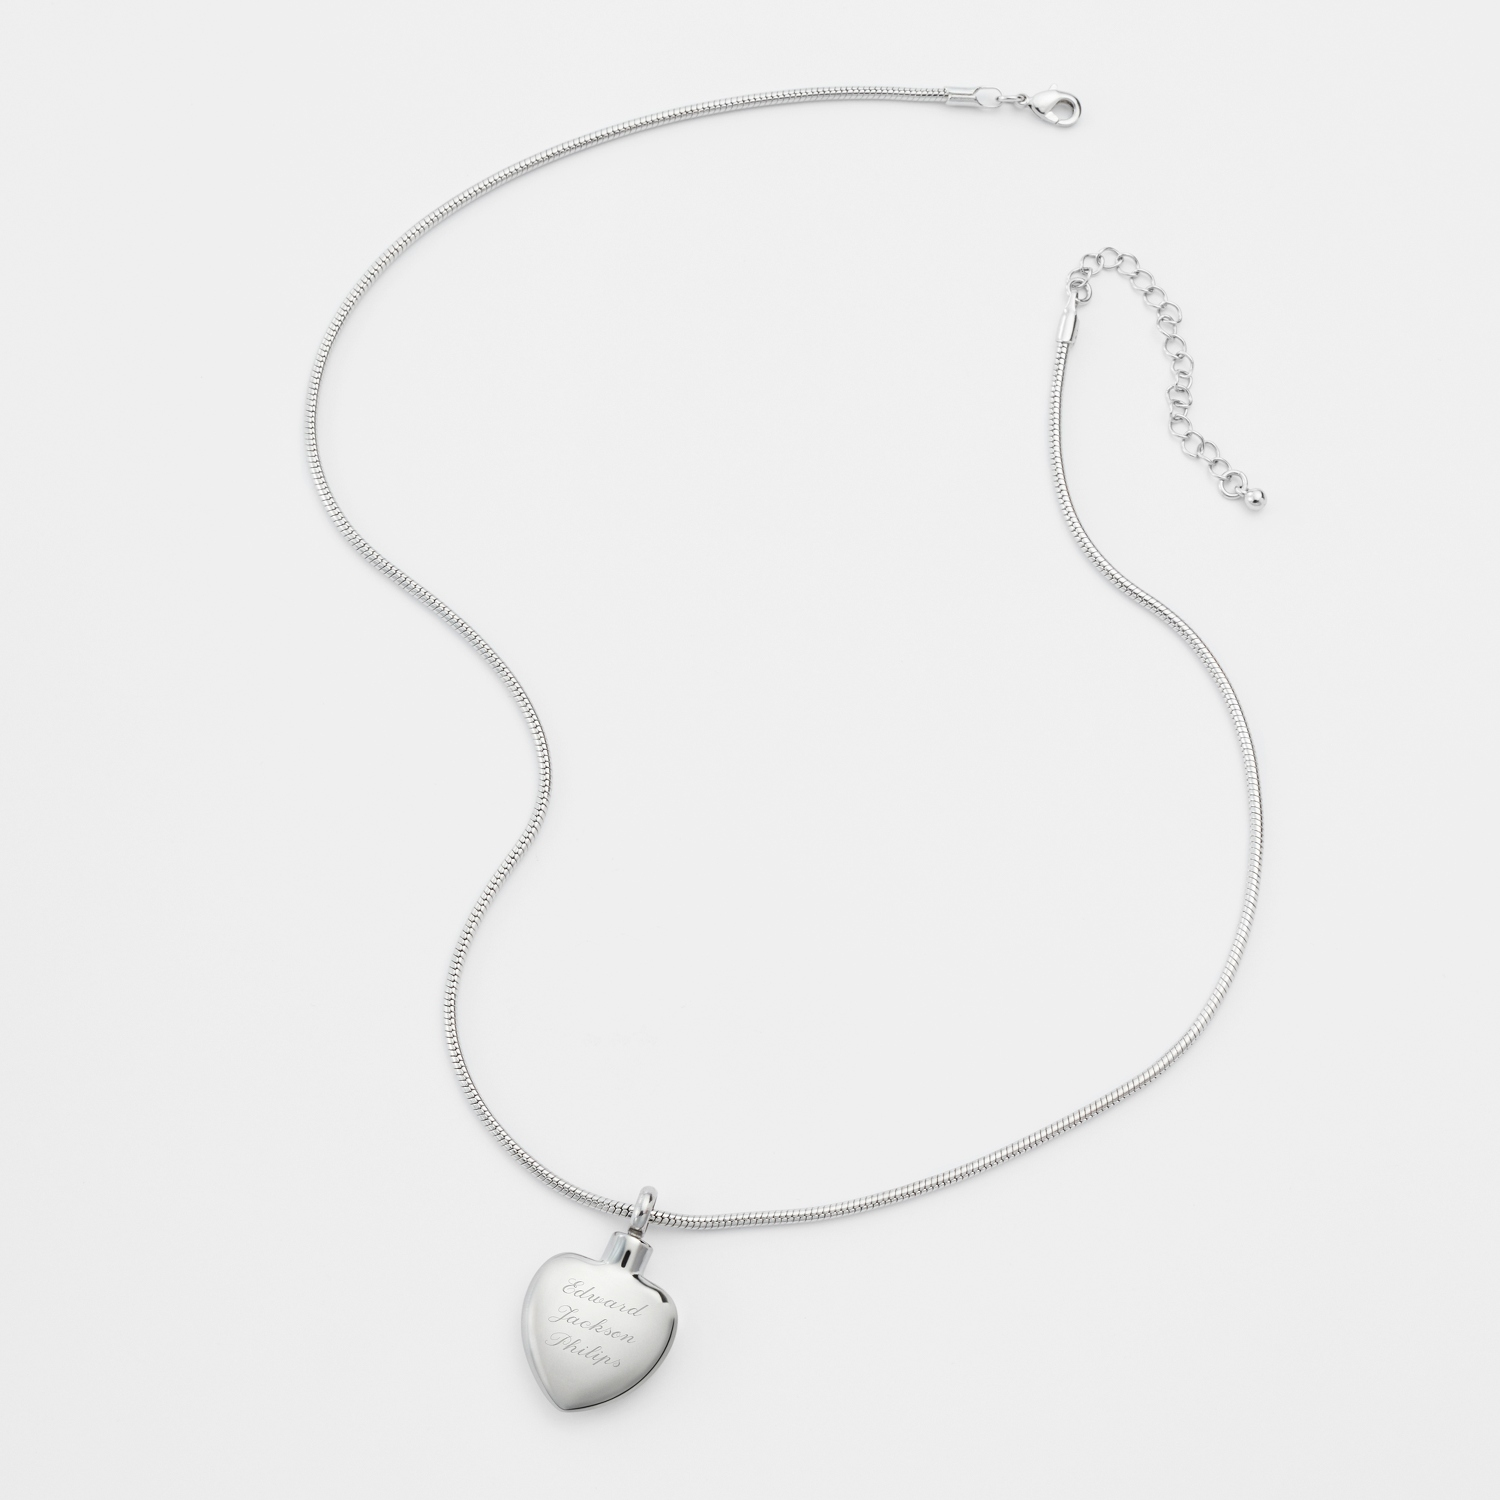 personalized memorial urn necklace